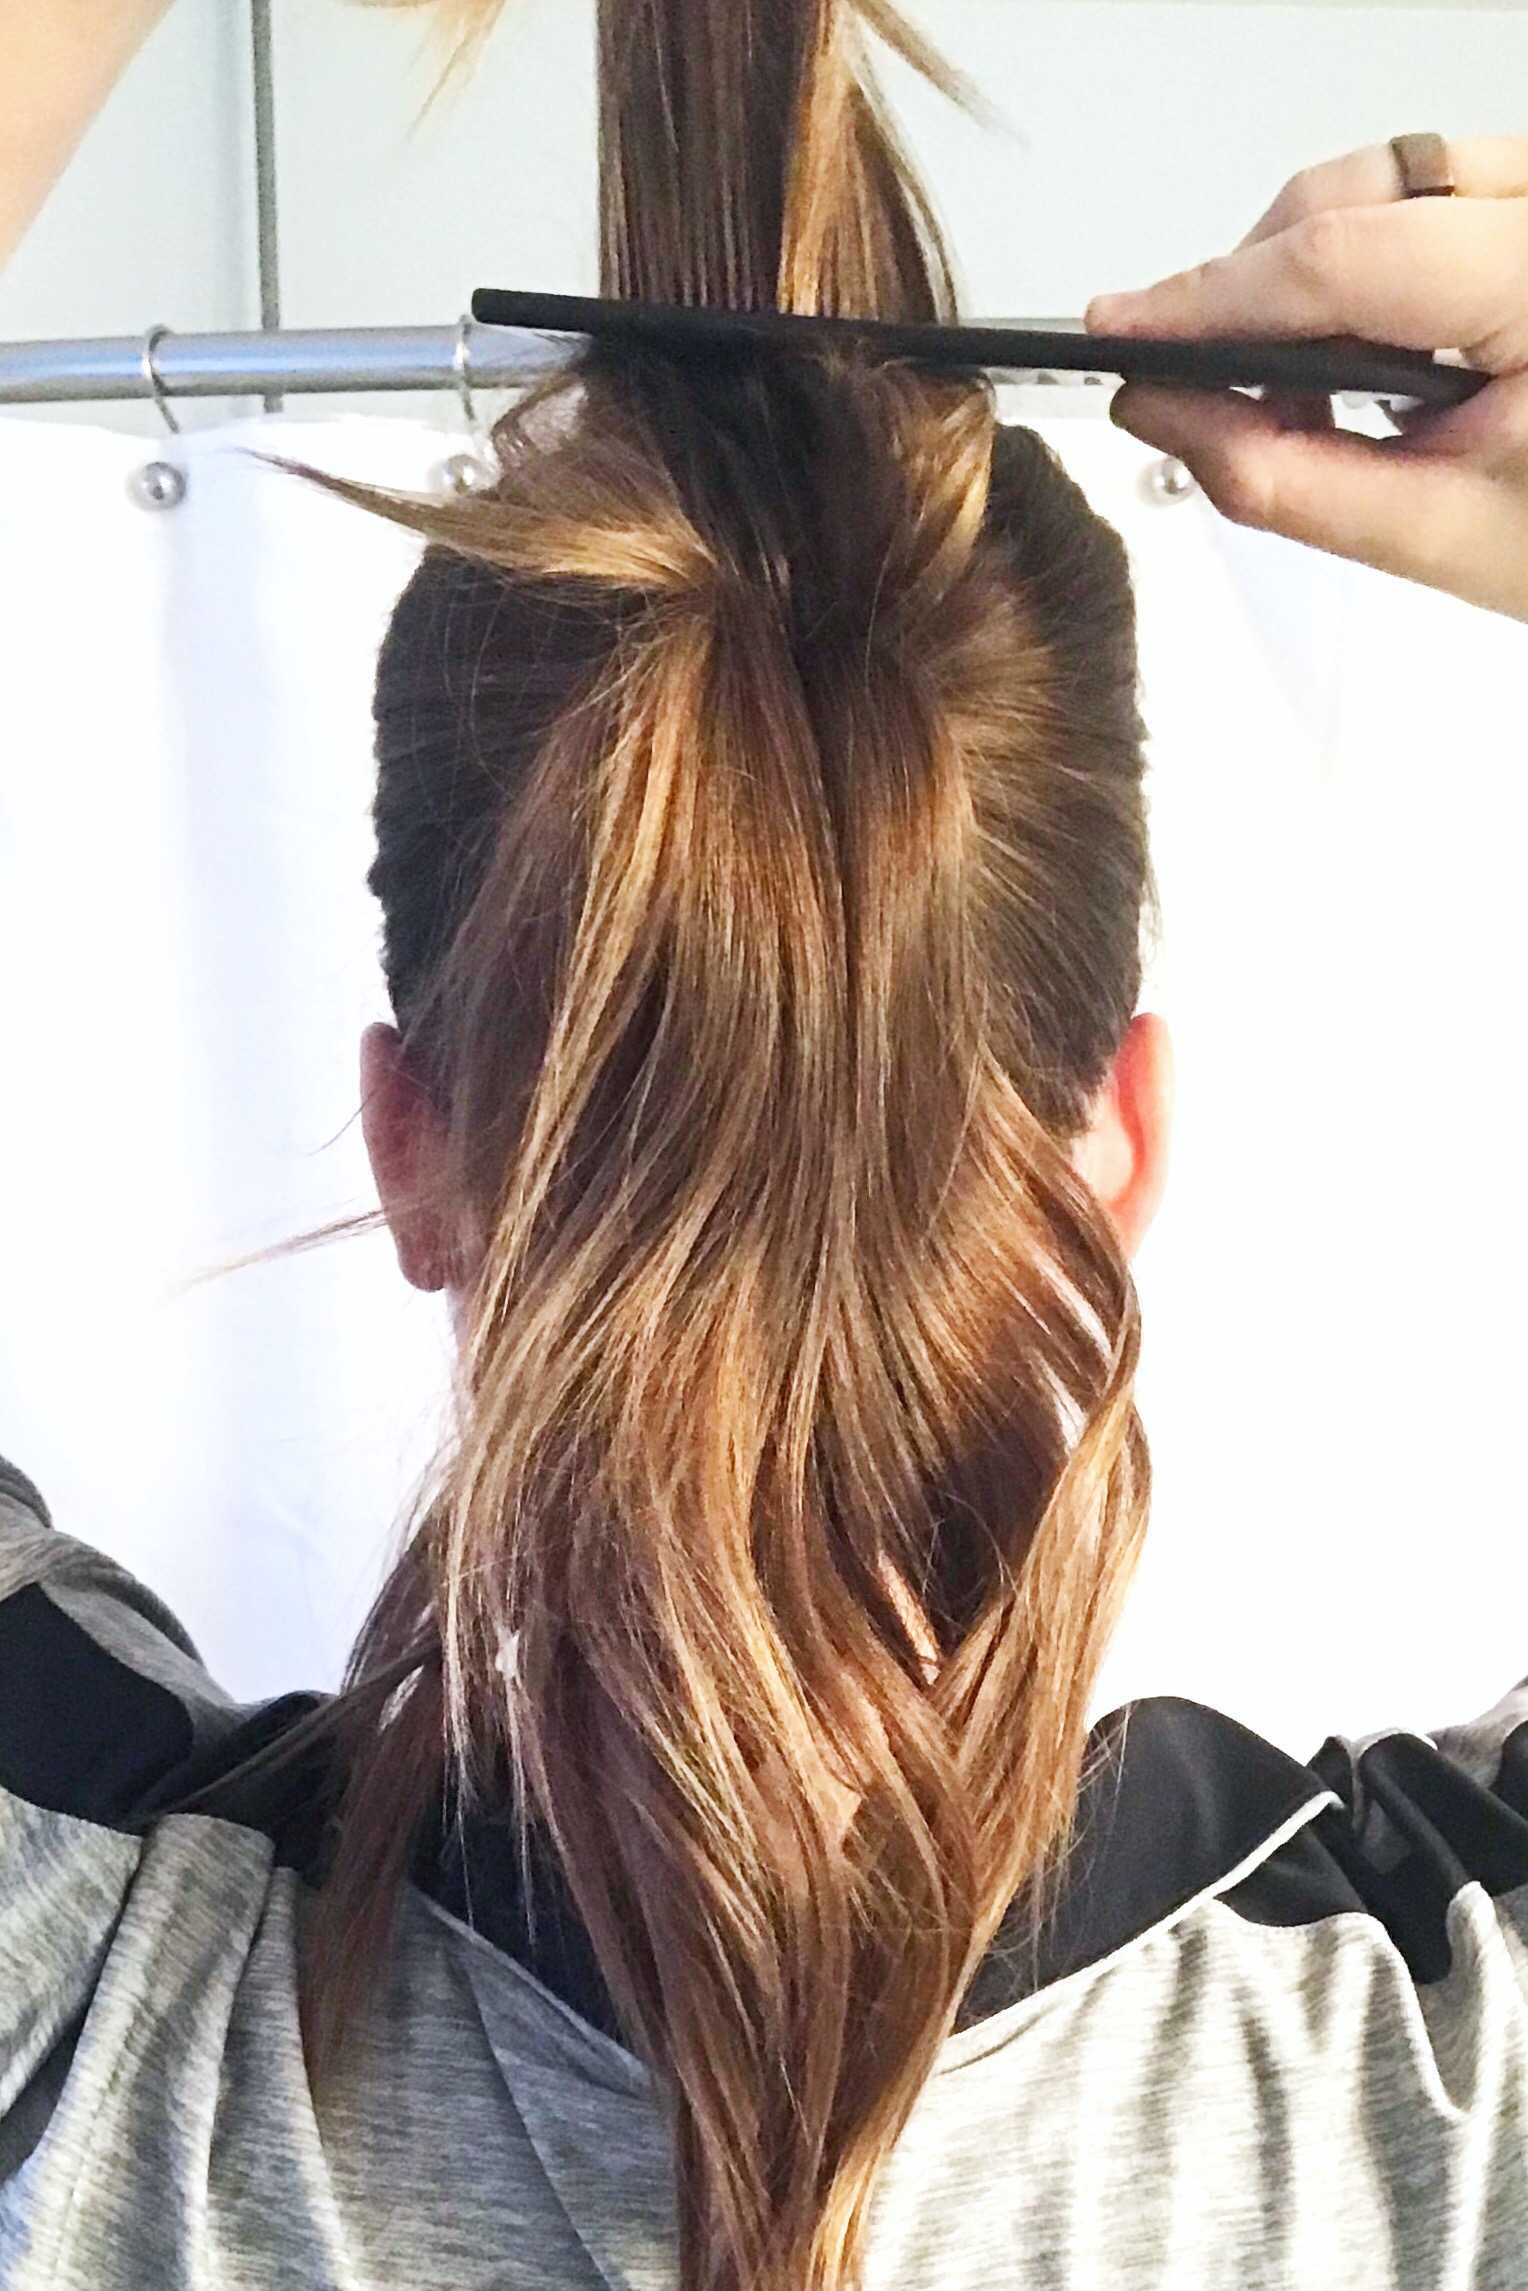 Then I take the top 1/3rd of my ponytail and tease that. After this I'll tease the bottom 2/3rds. This next trick is where the magic happens!